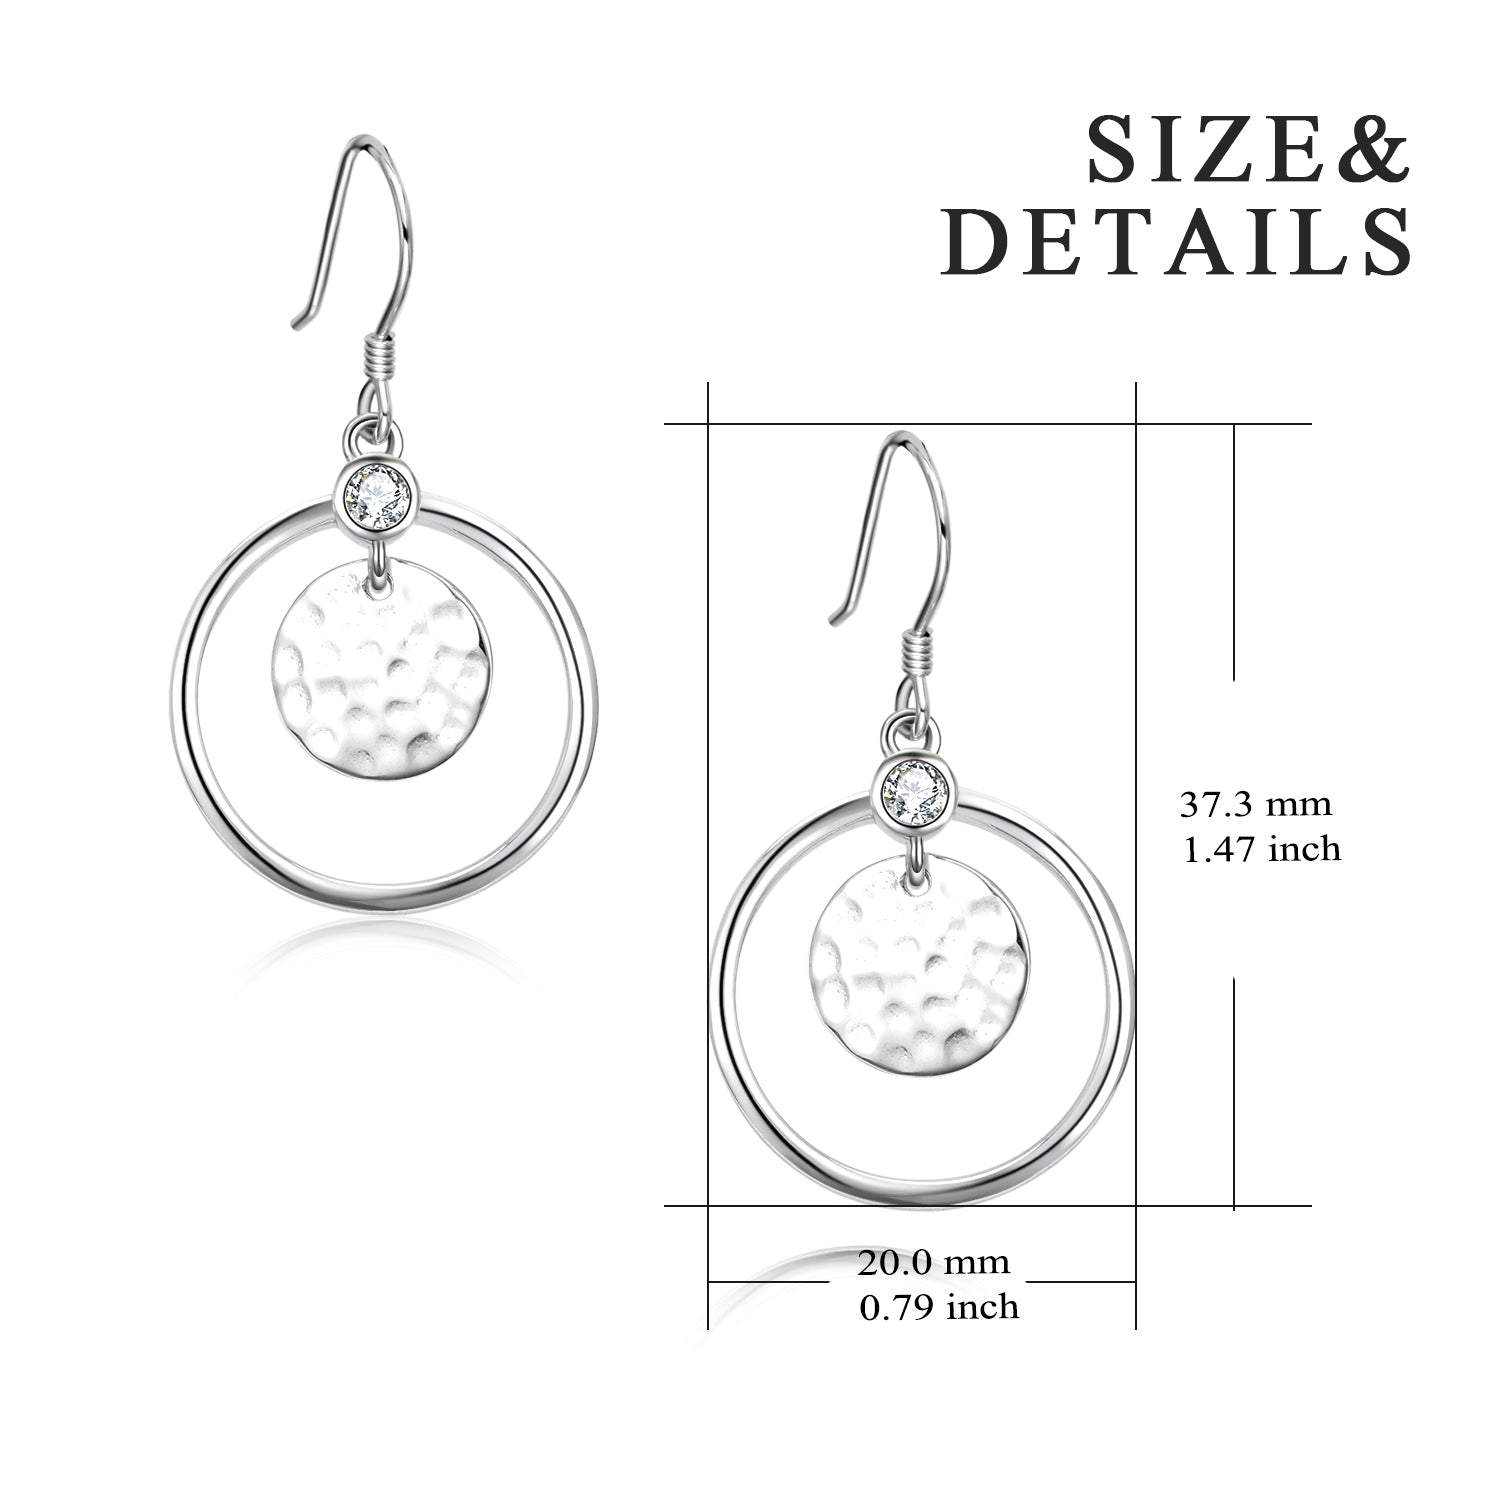 Fashionable jewelry Asperous Round Disc Drop Earrings for Women Party Accessories